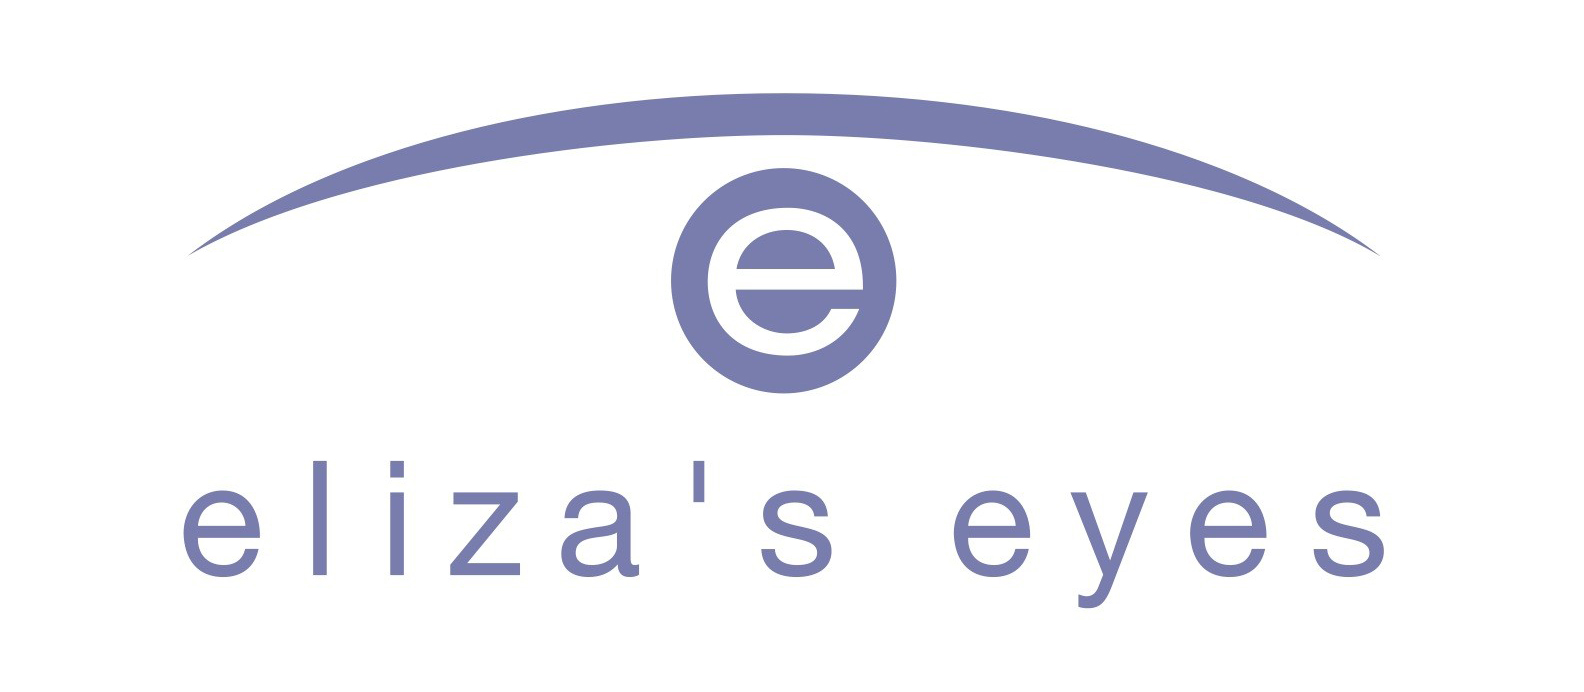 eliza's eyes logo